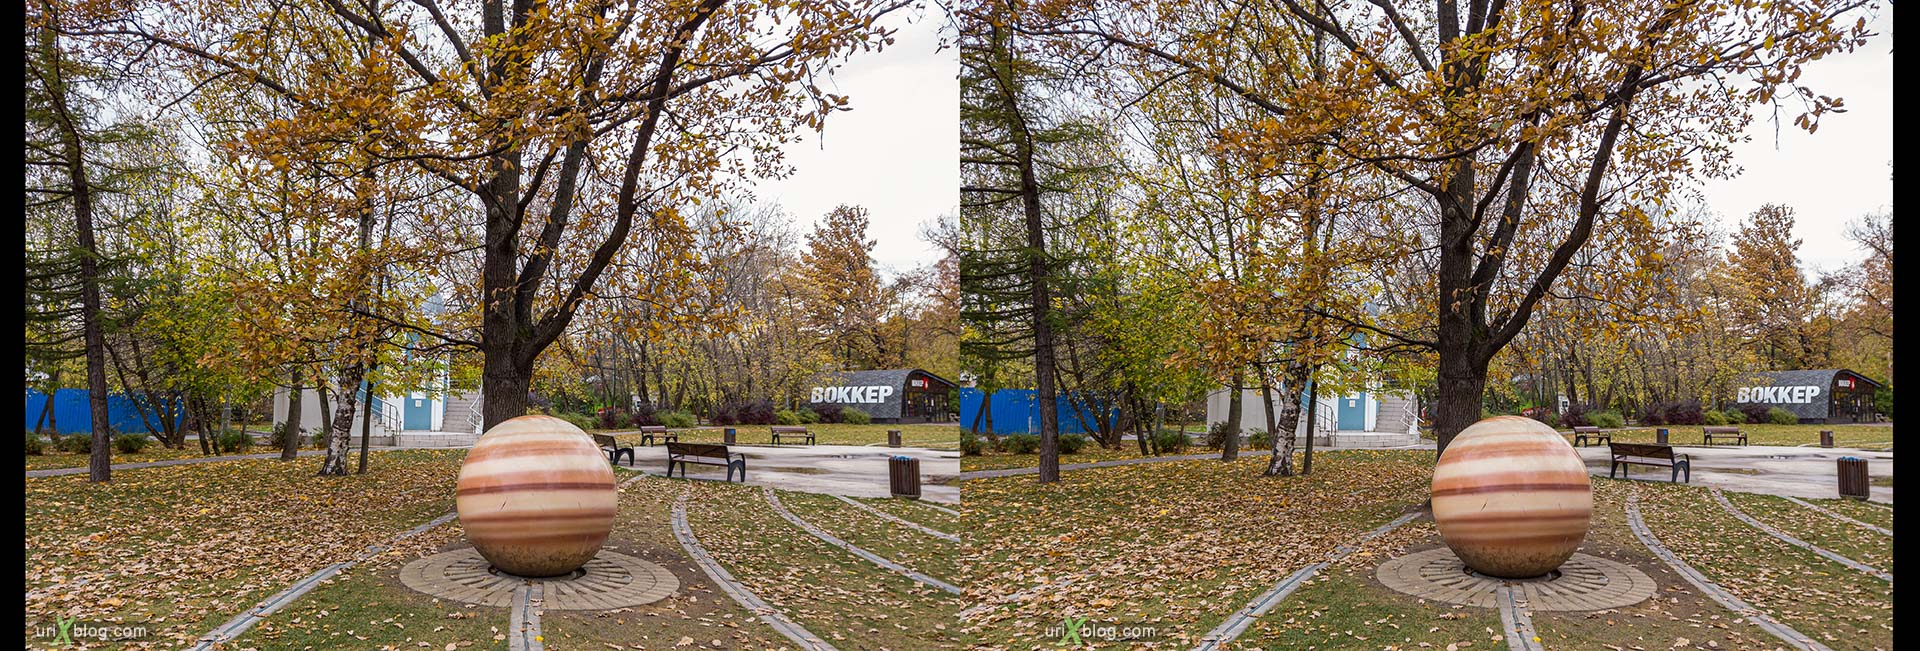 observatory, Sokolniki, park, Moscow, Russia, 3D, stereo pair, cross-eyed, crossview, cross view stereo pair, stereoscopic